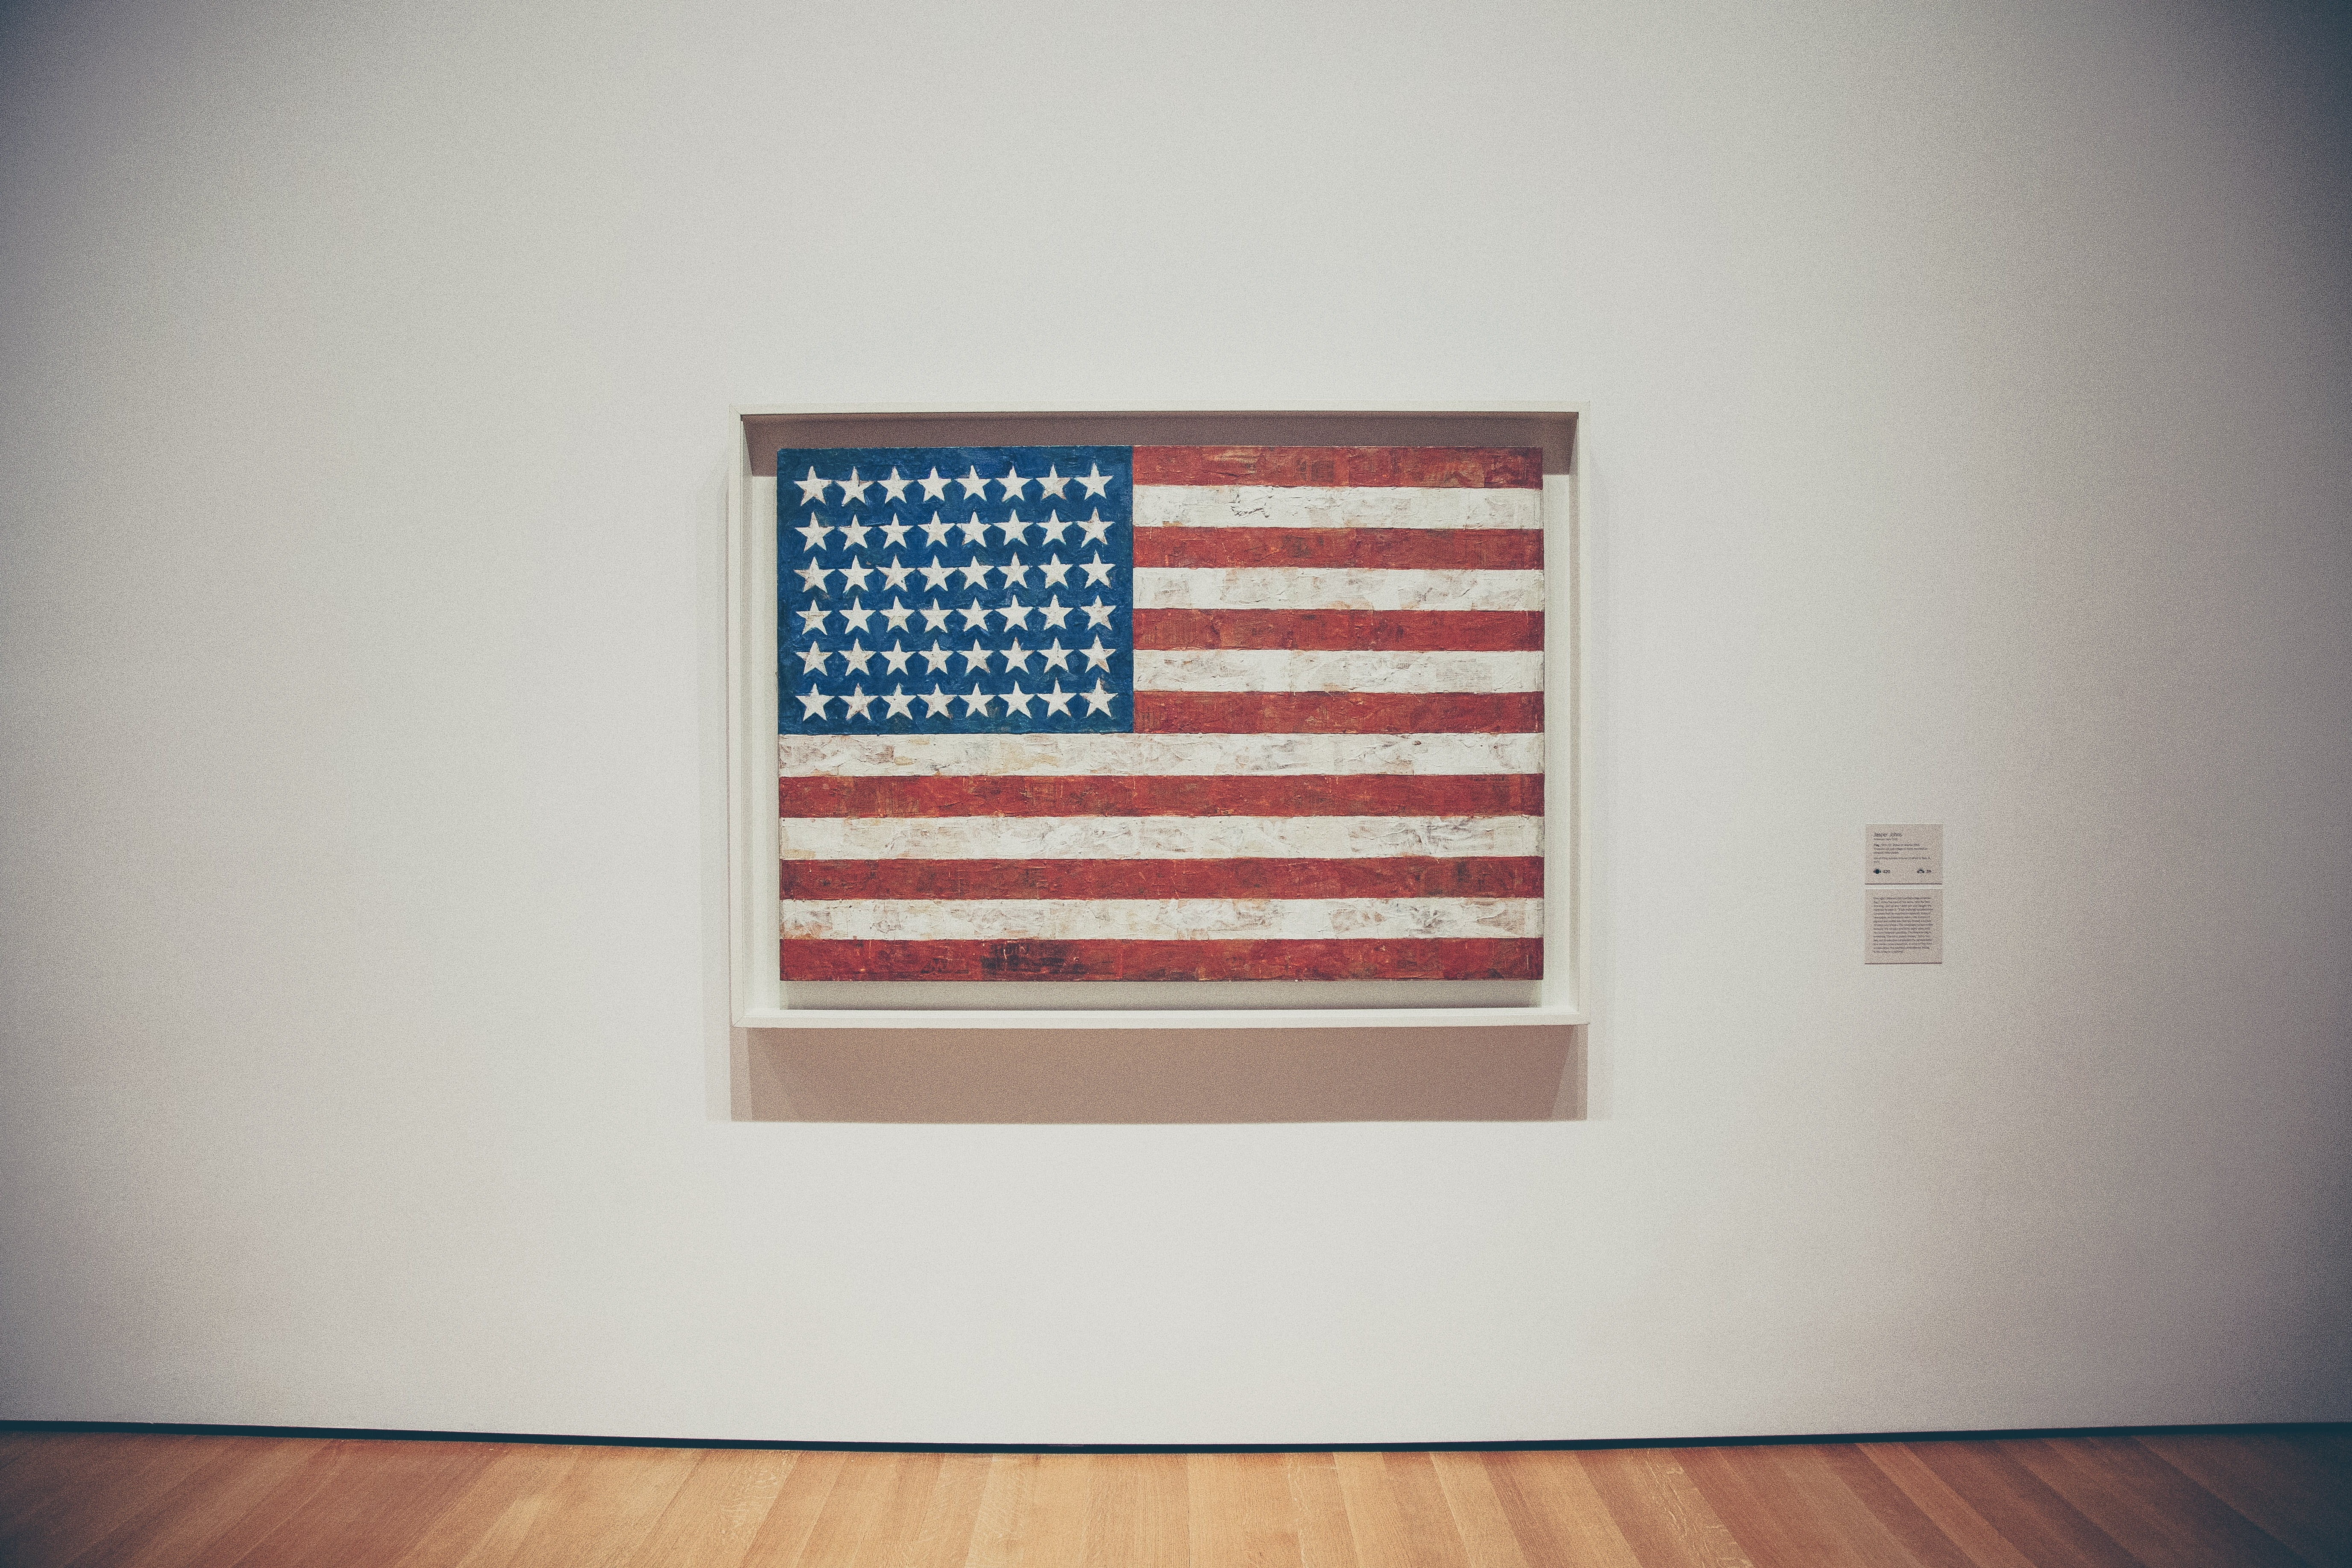 An American Flag painting on a wall in a museum